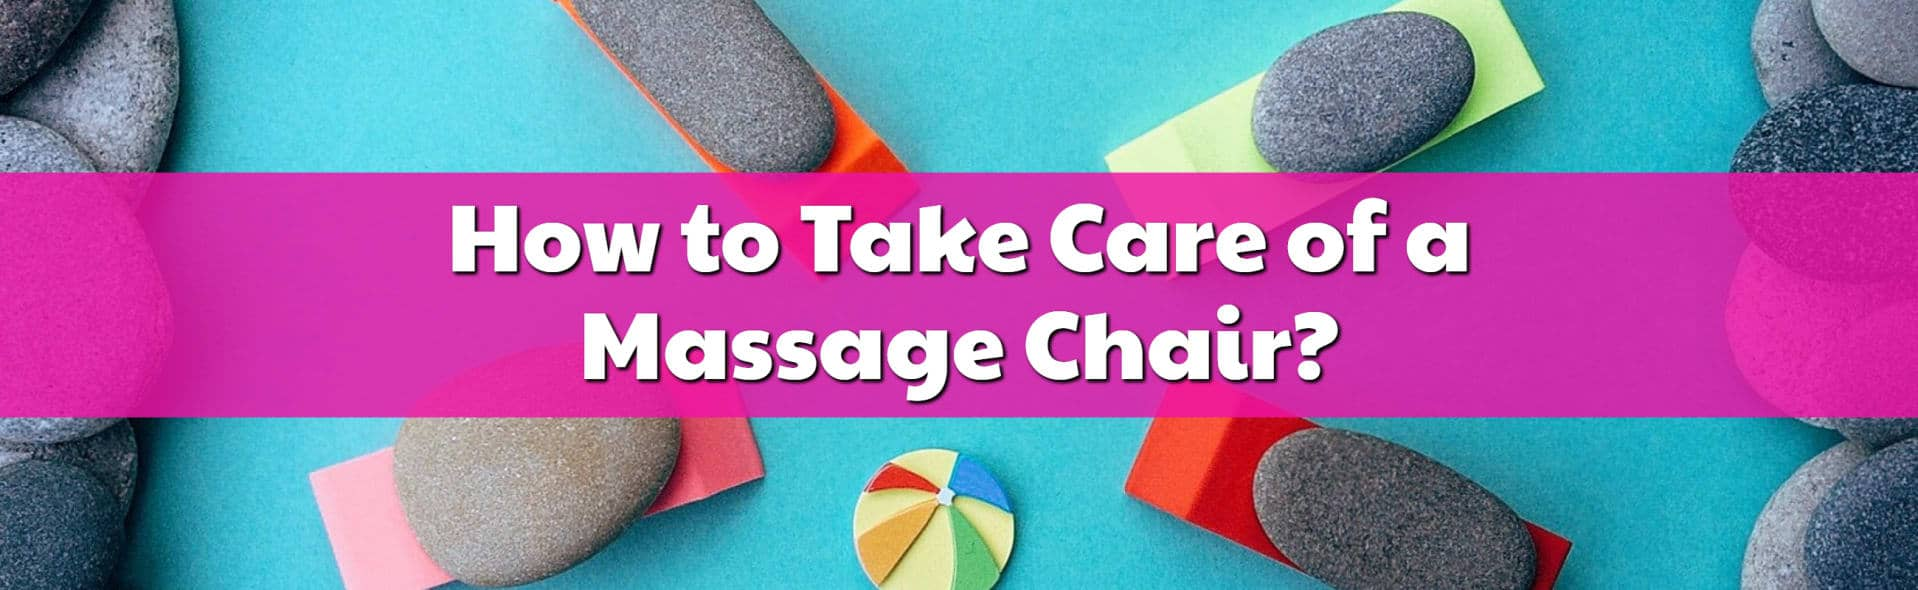 How to Take Care of a Massage Chair?